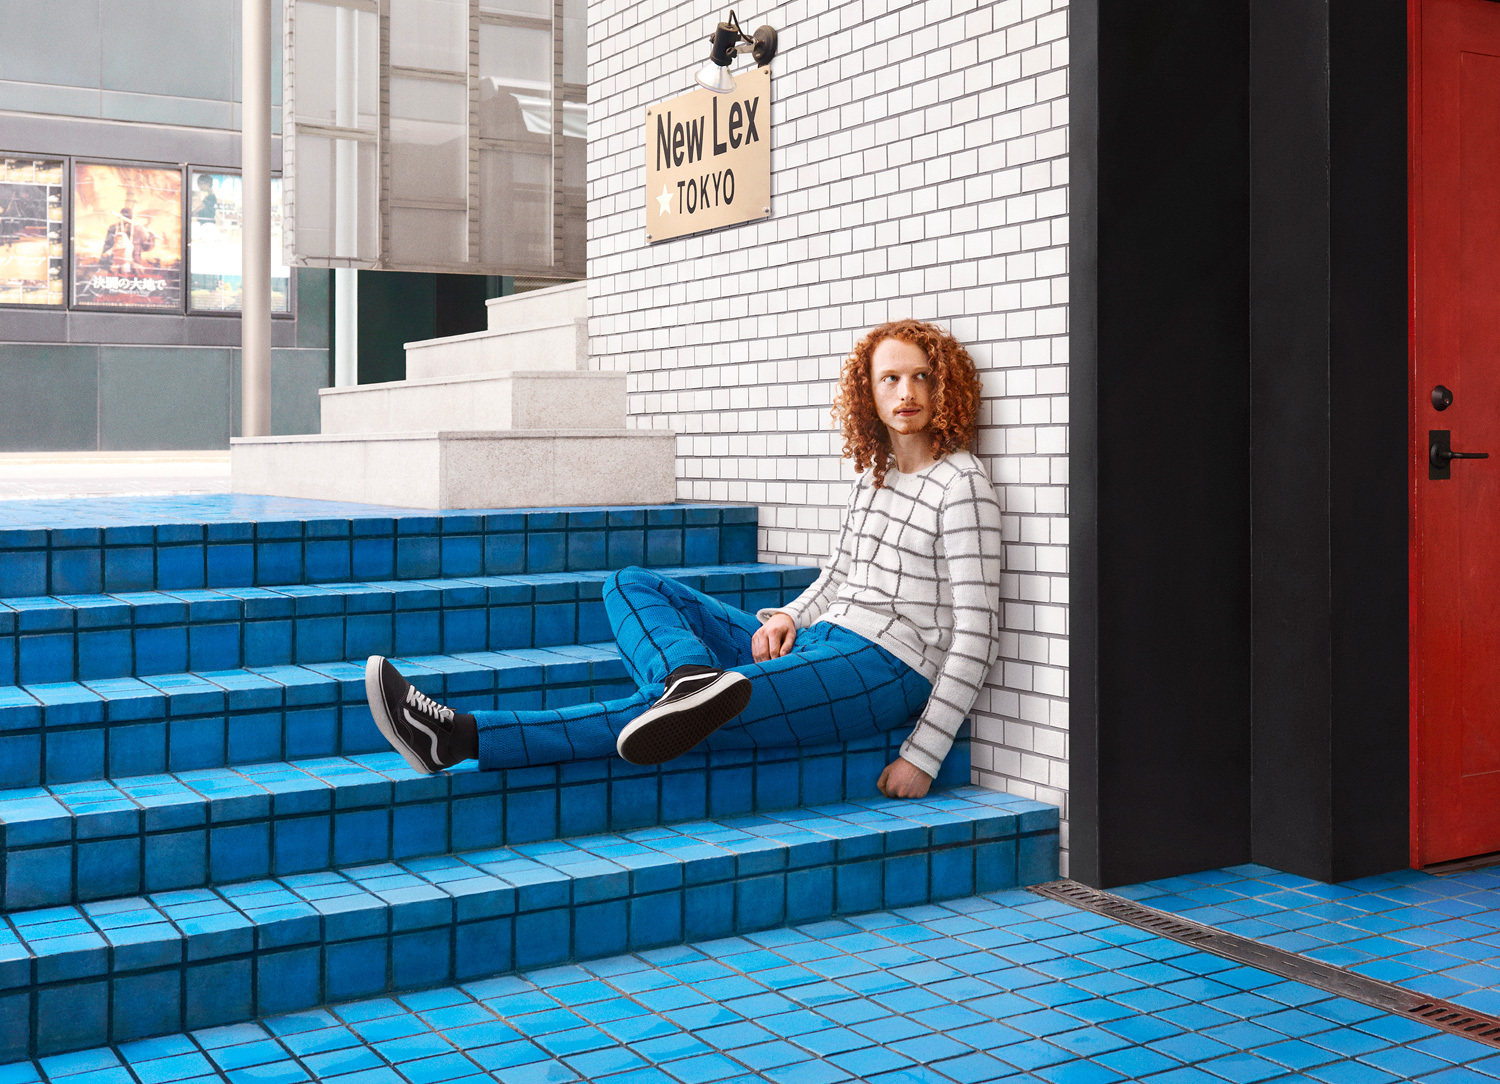 Custom Hand-Knit Sweaters Blend Subjects into Urban Environments (7 pics)